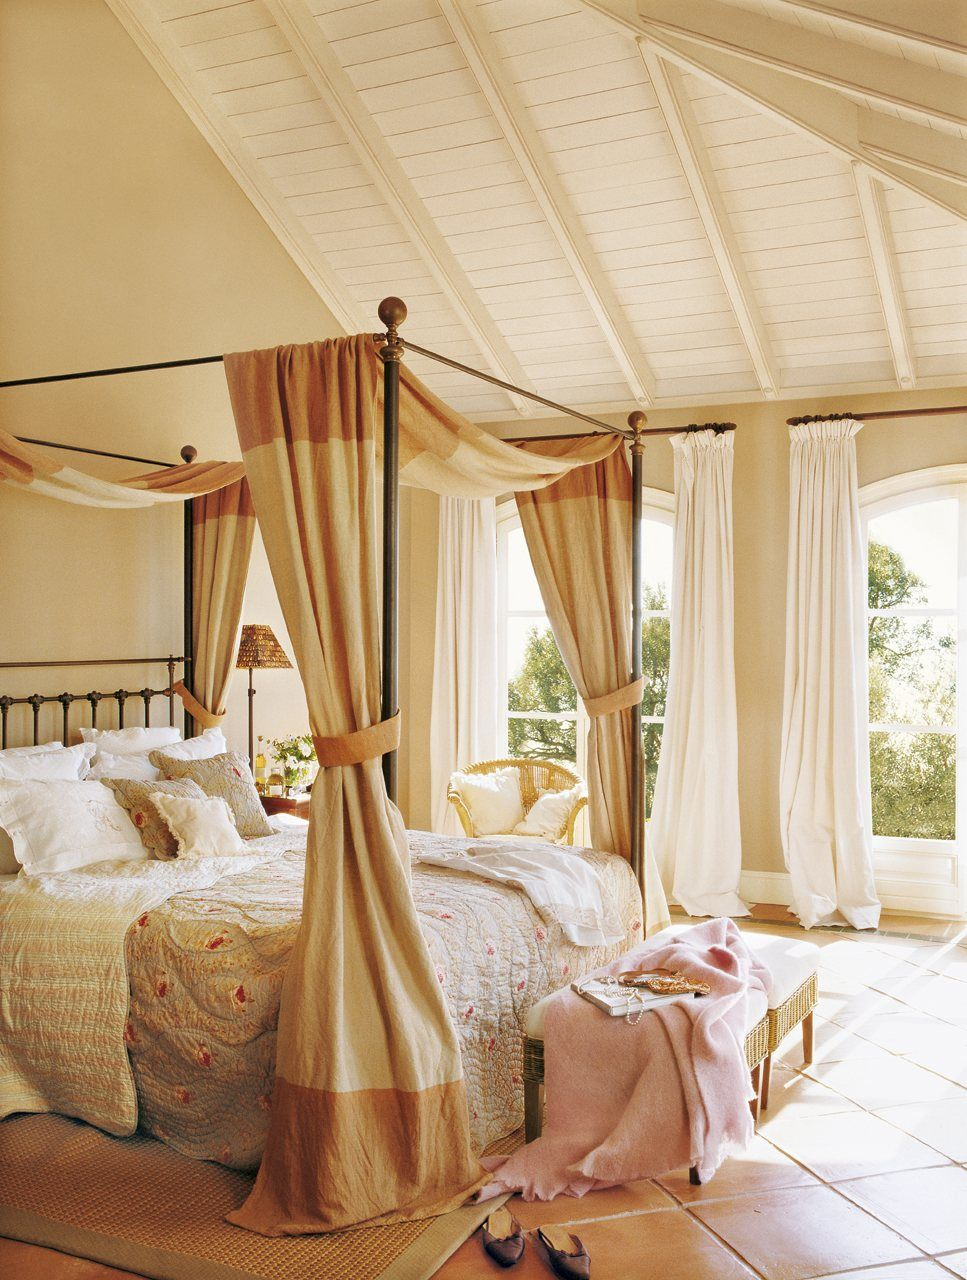 a canopy bed with natural textures and travertine tile floor bedrooms homedecor